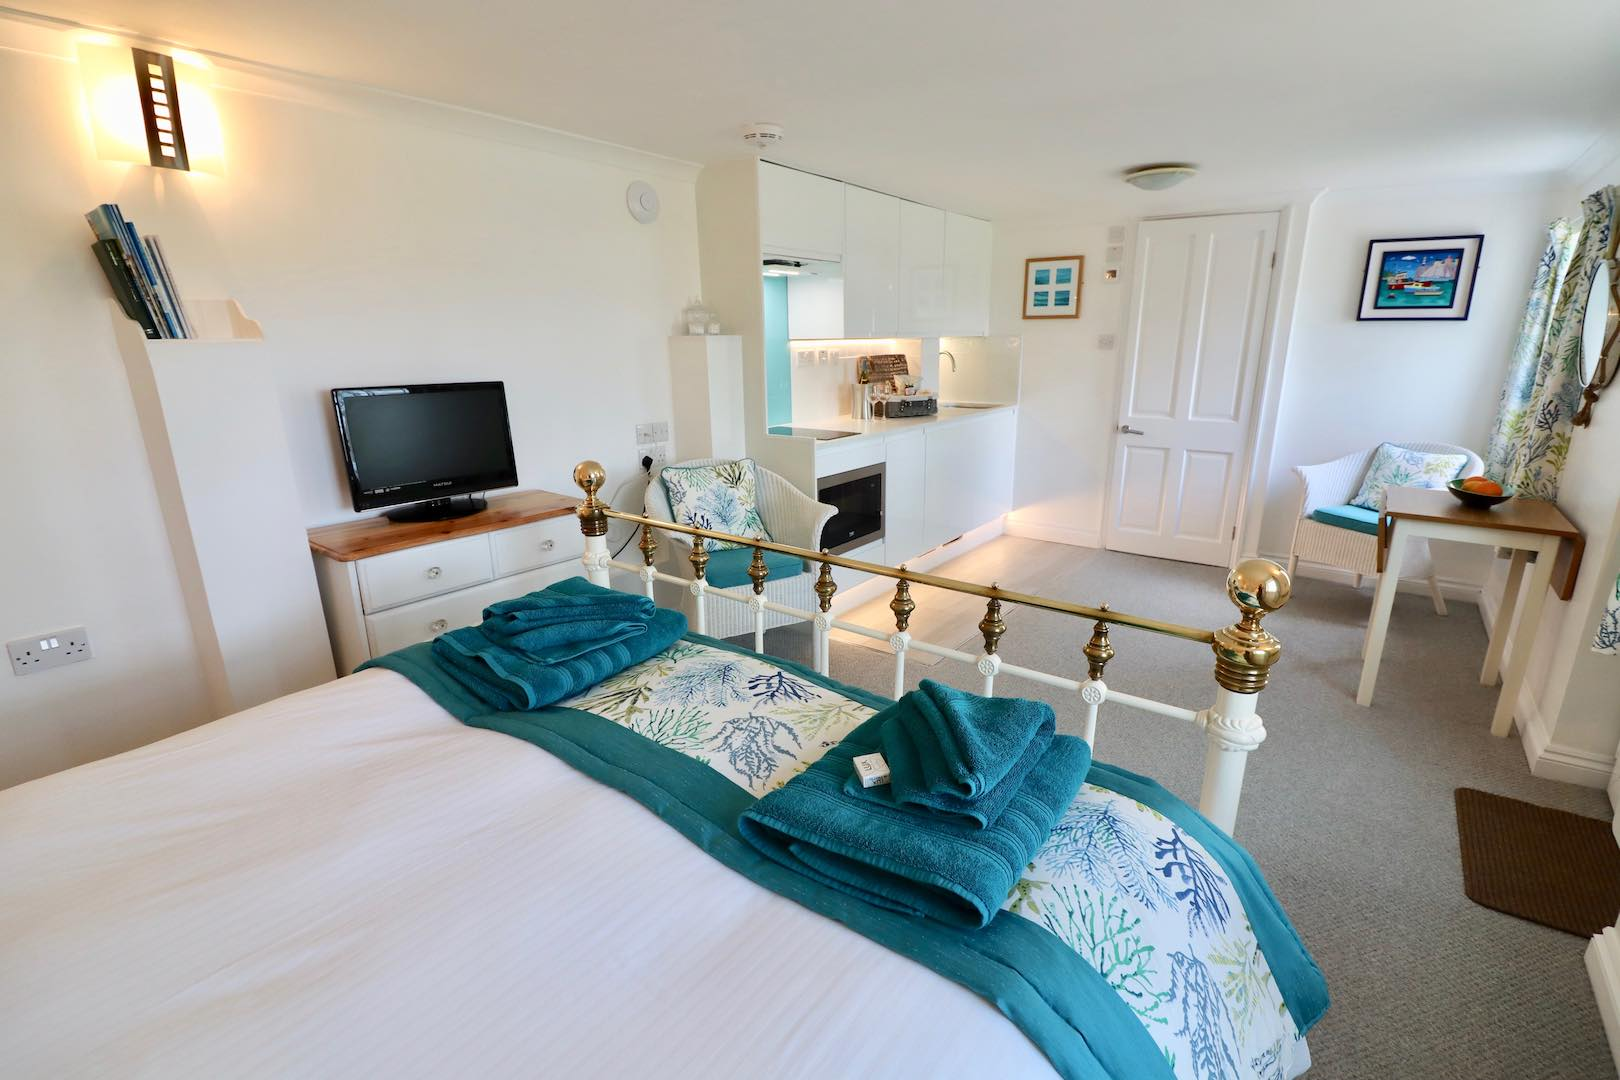 Penhallow Self Catering St Marys